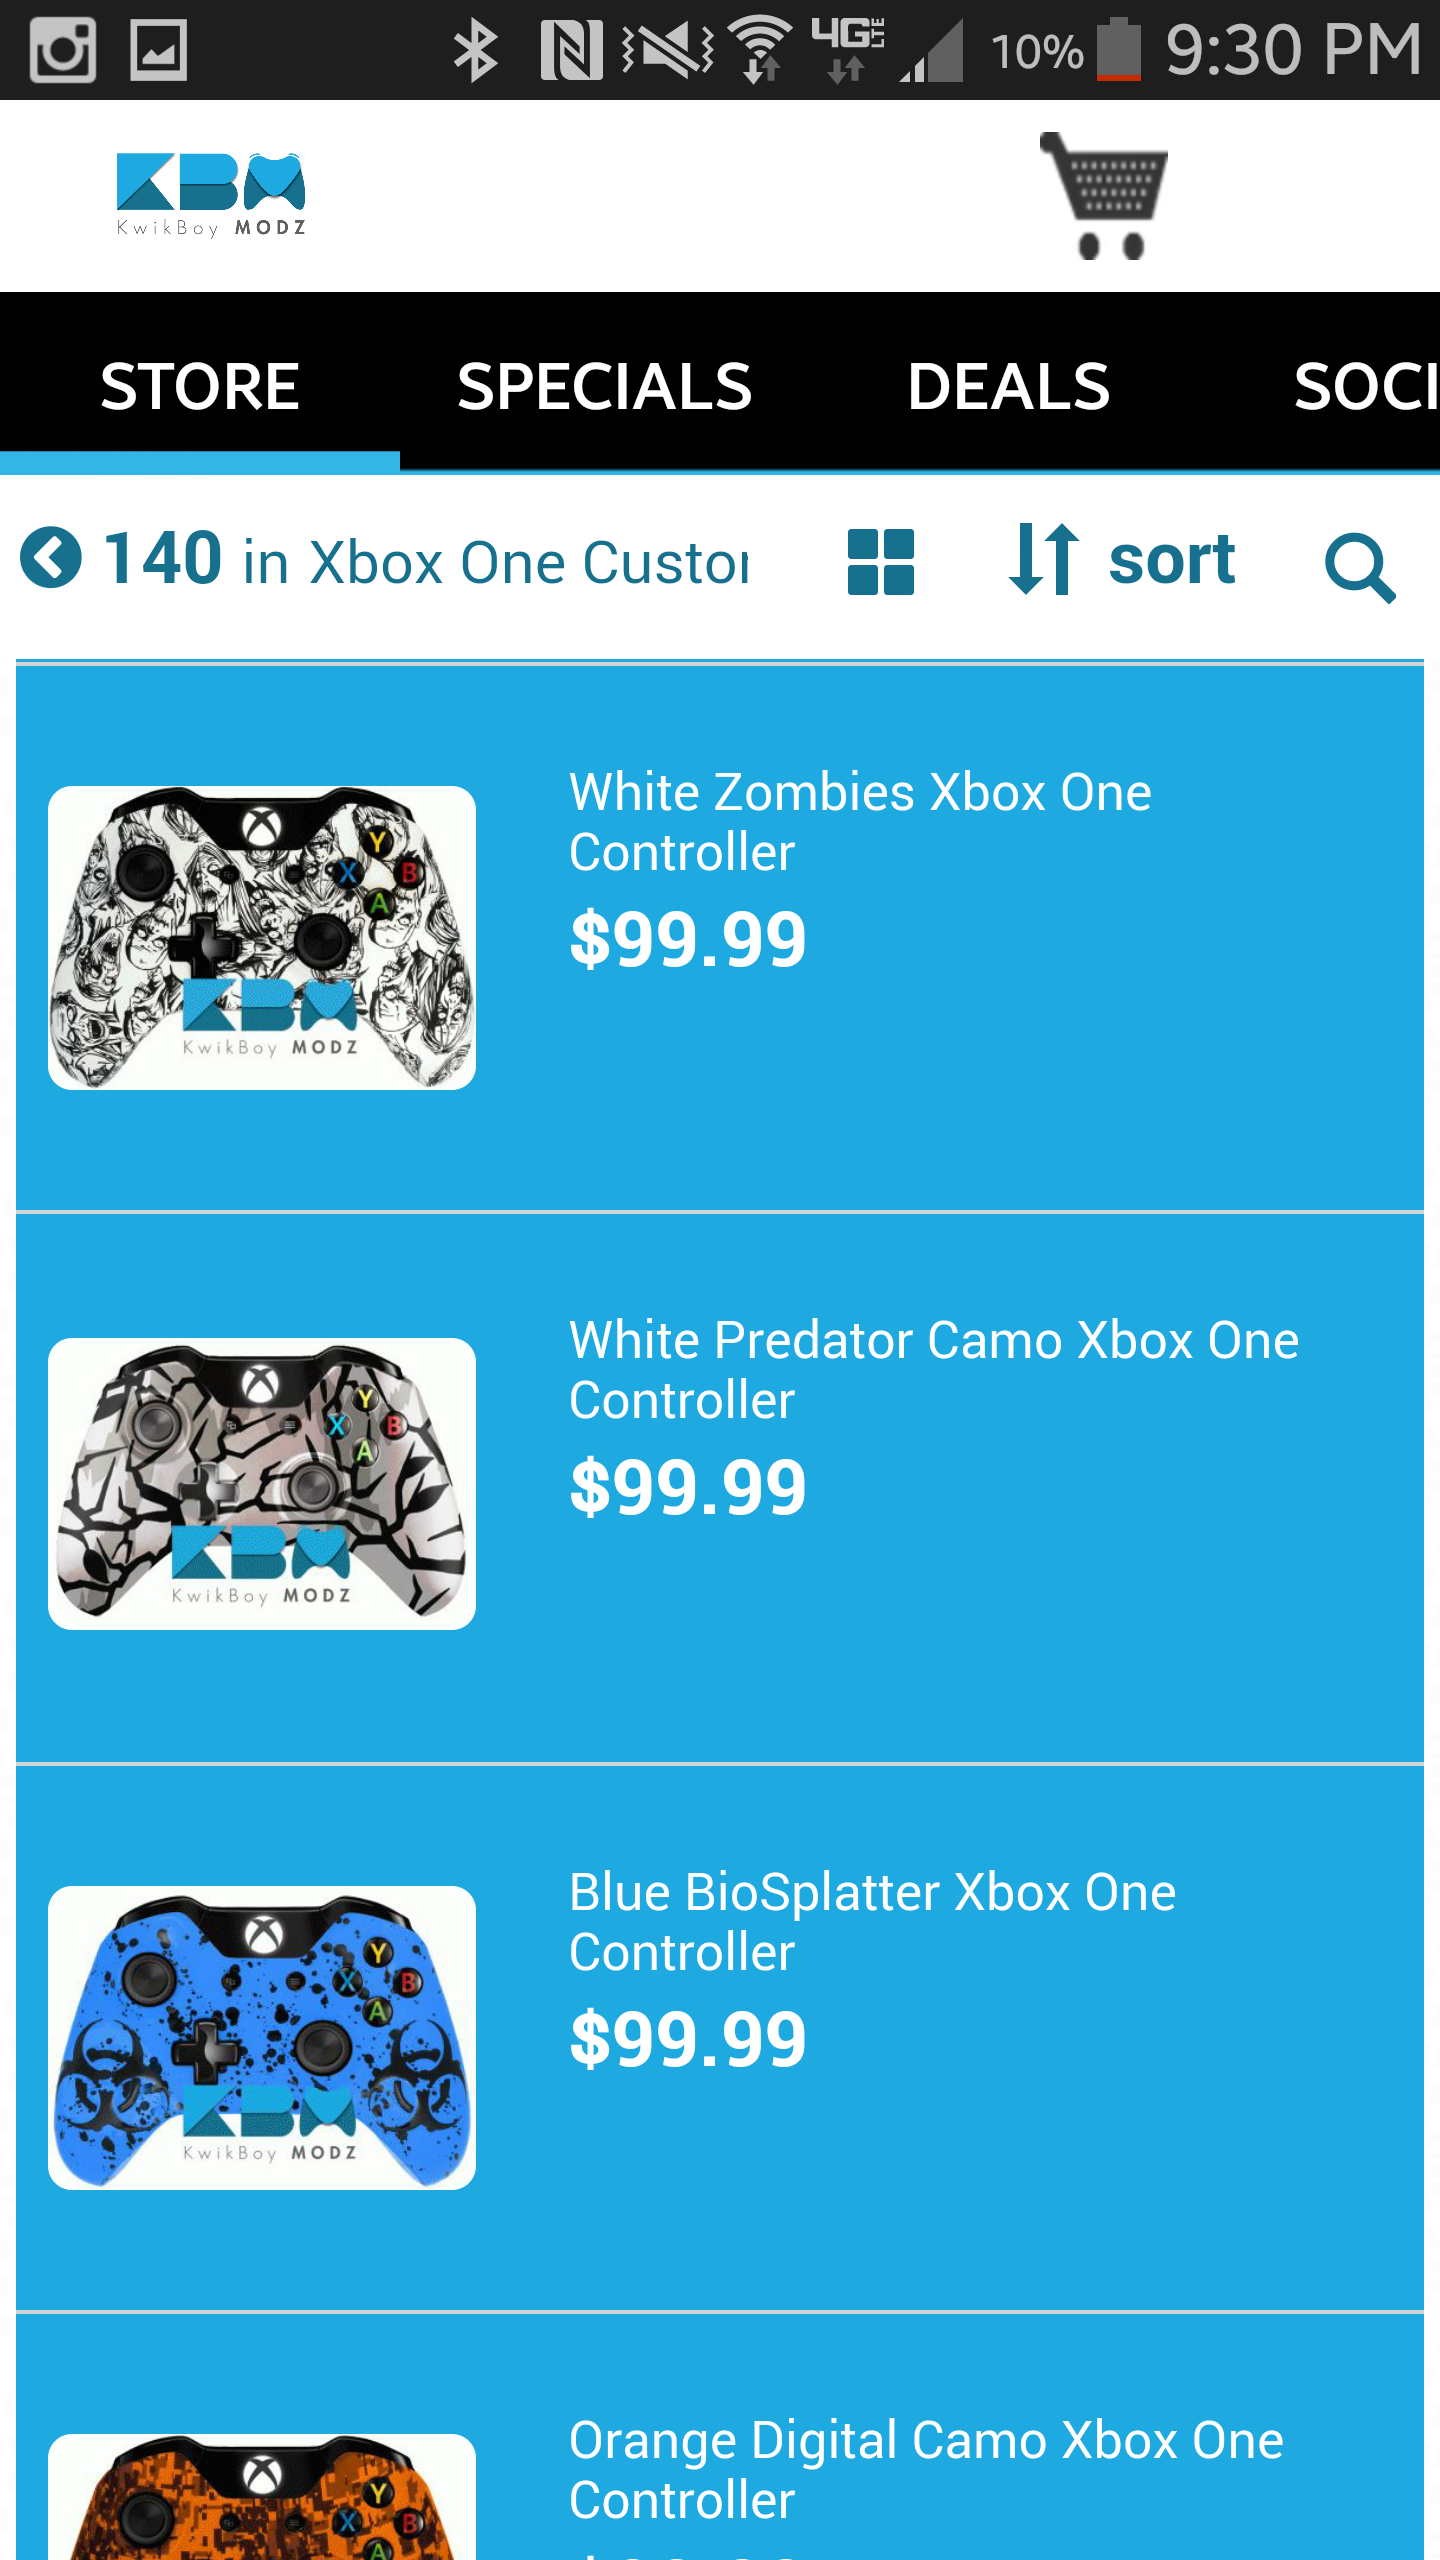 You Can Now Shop For Controllers and Track Your Order